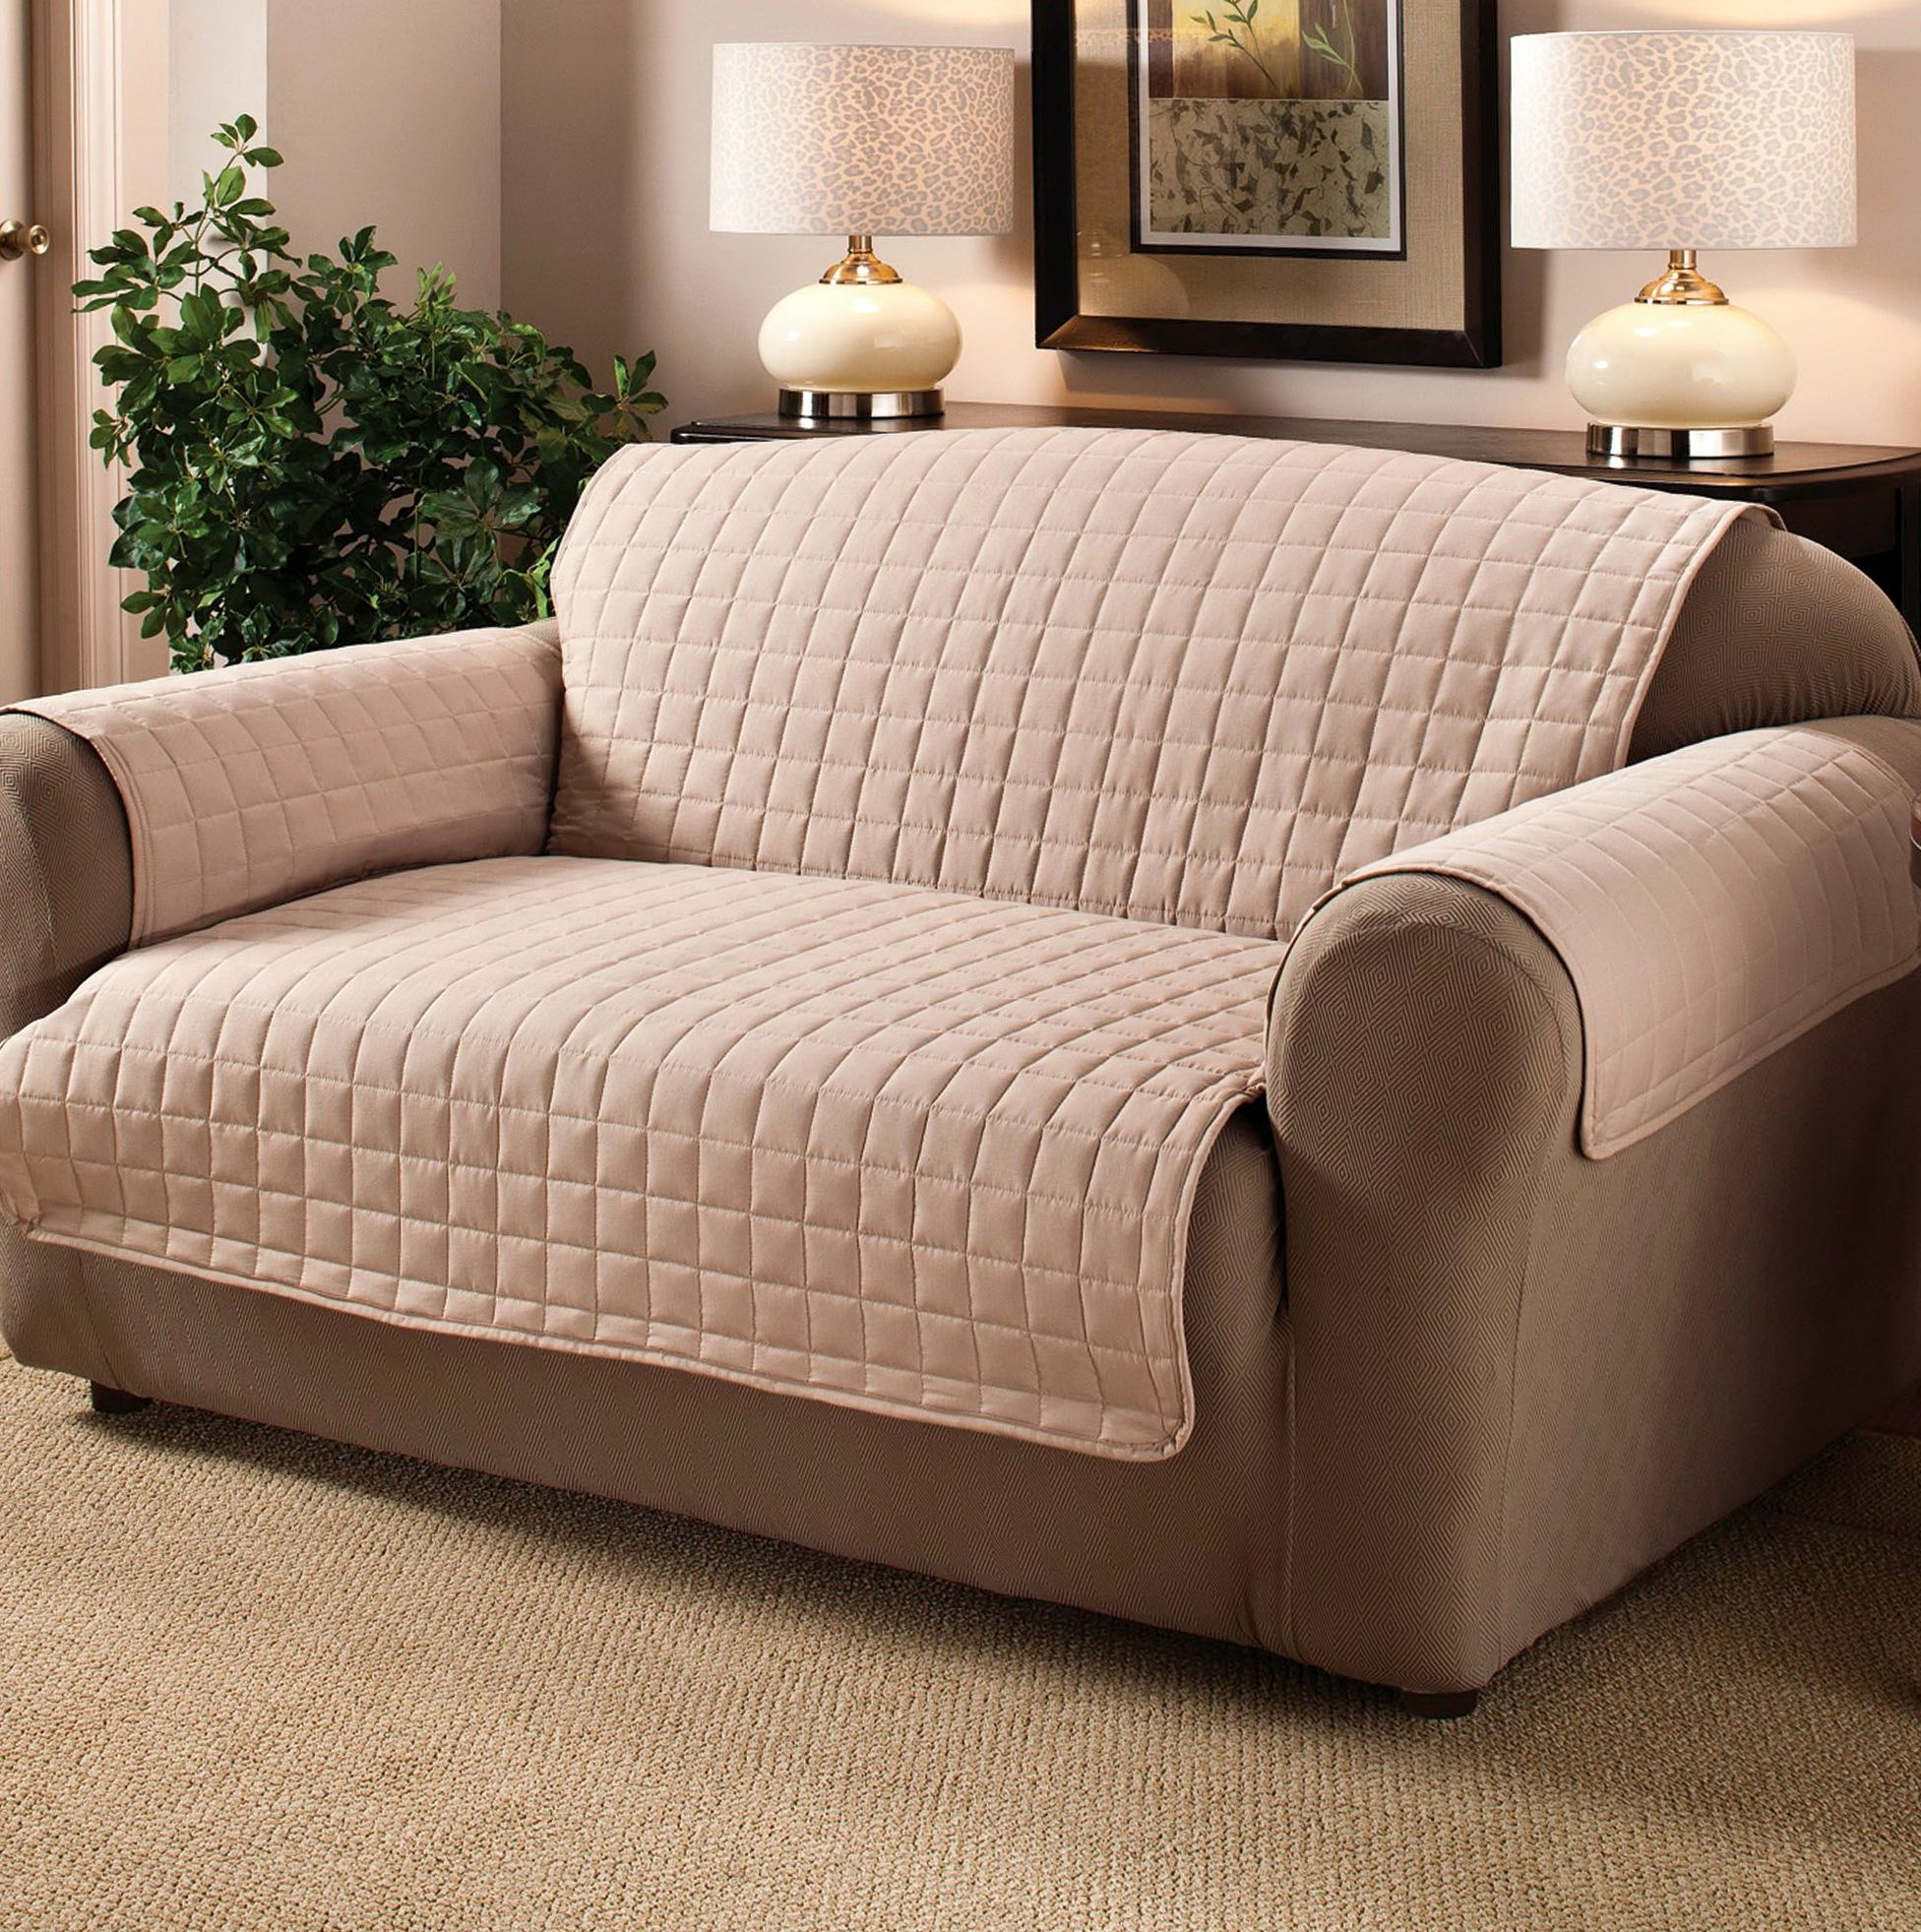 Scotch Sofa Cover Photograpy Plastic Sofa Covers With